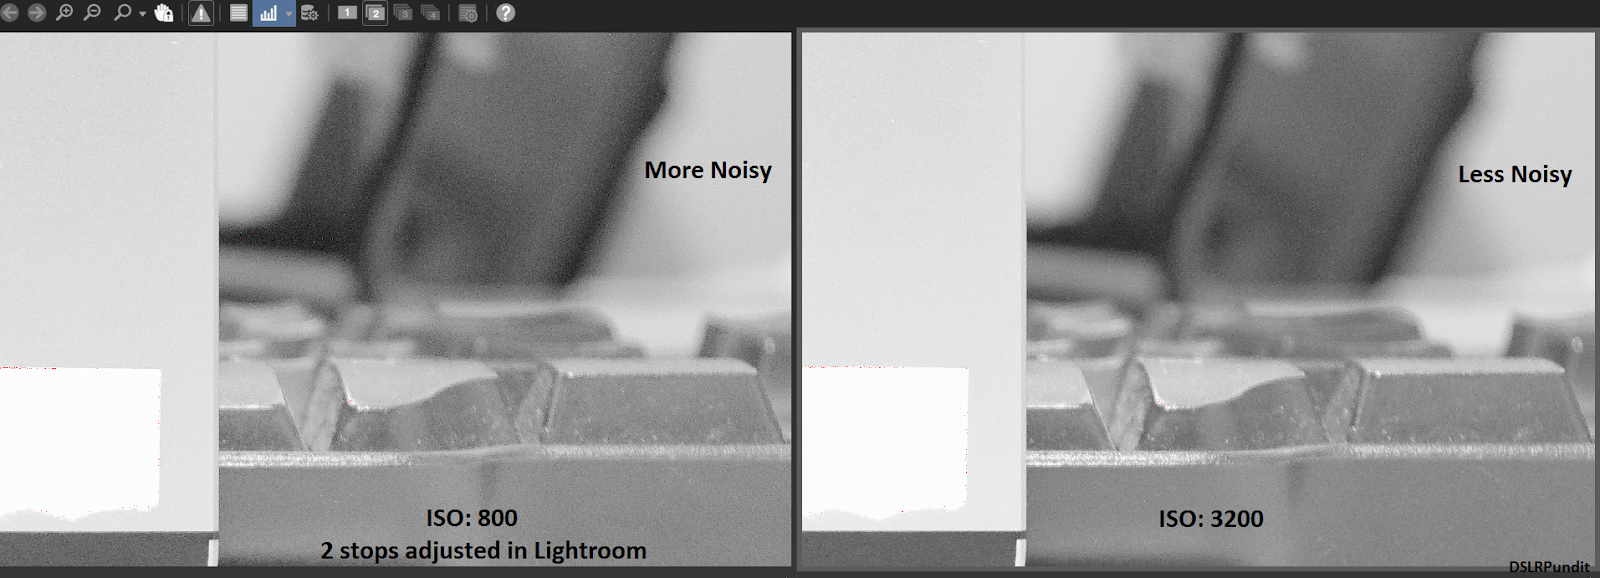 Higher vs lower ISO noise